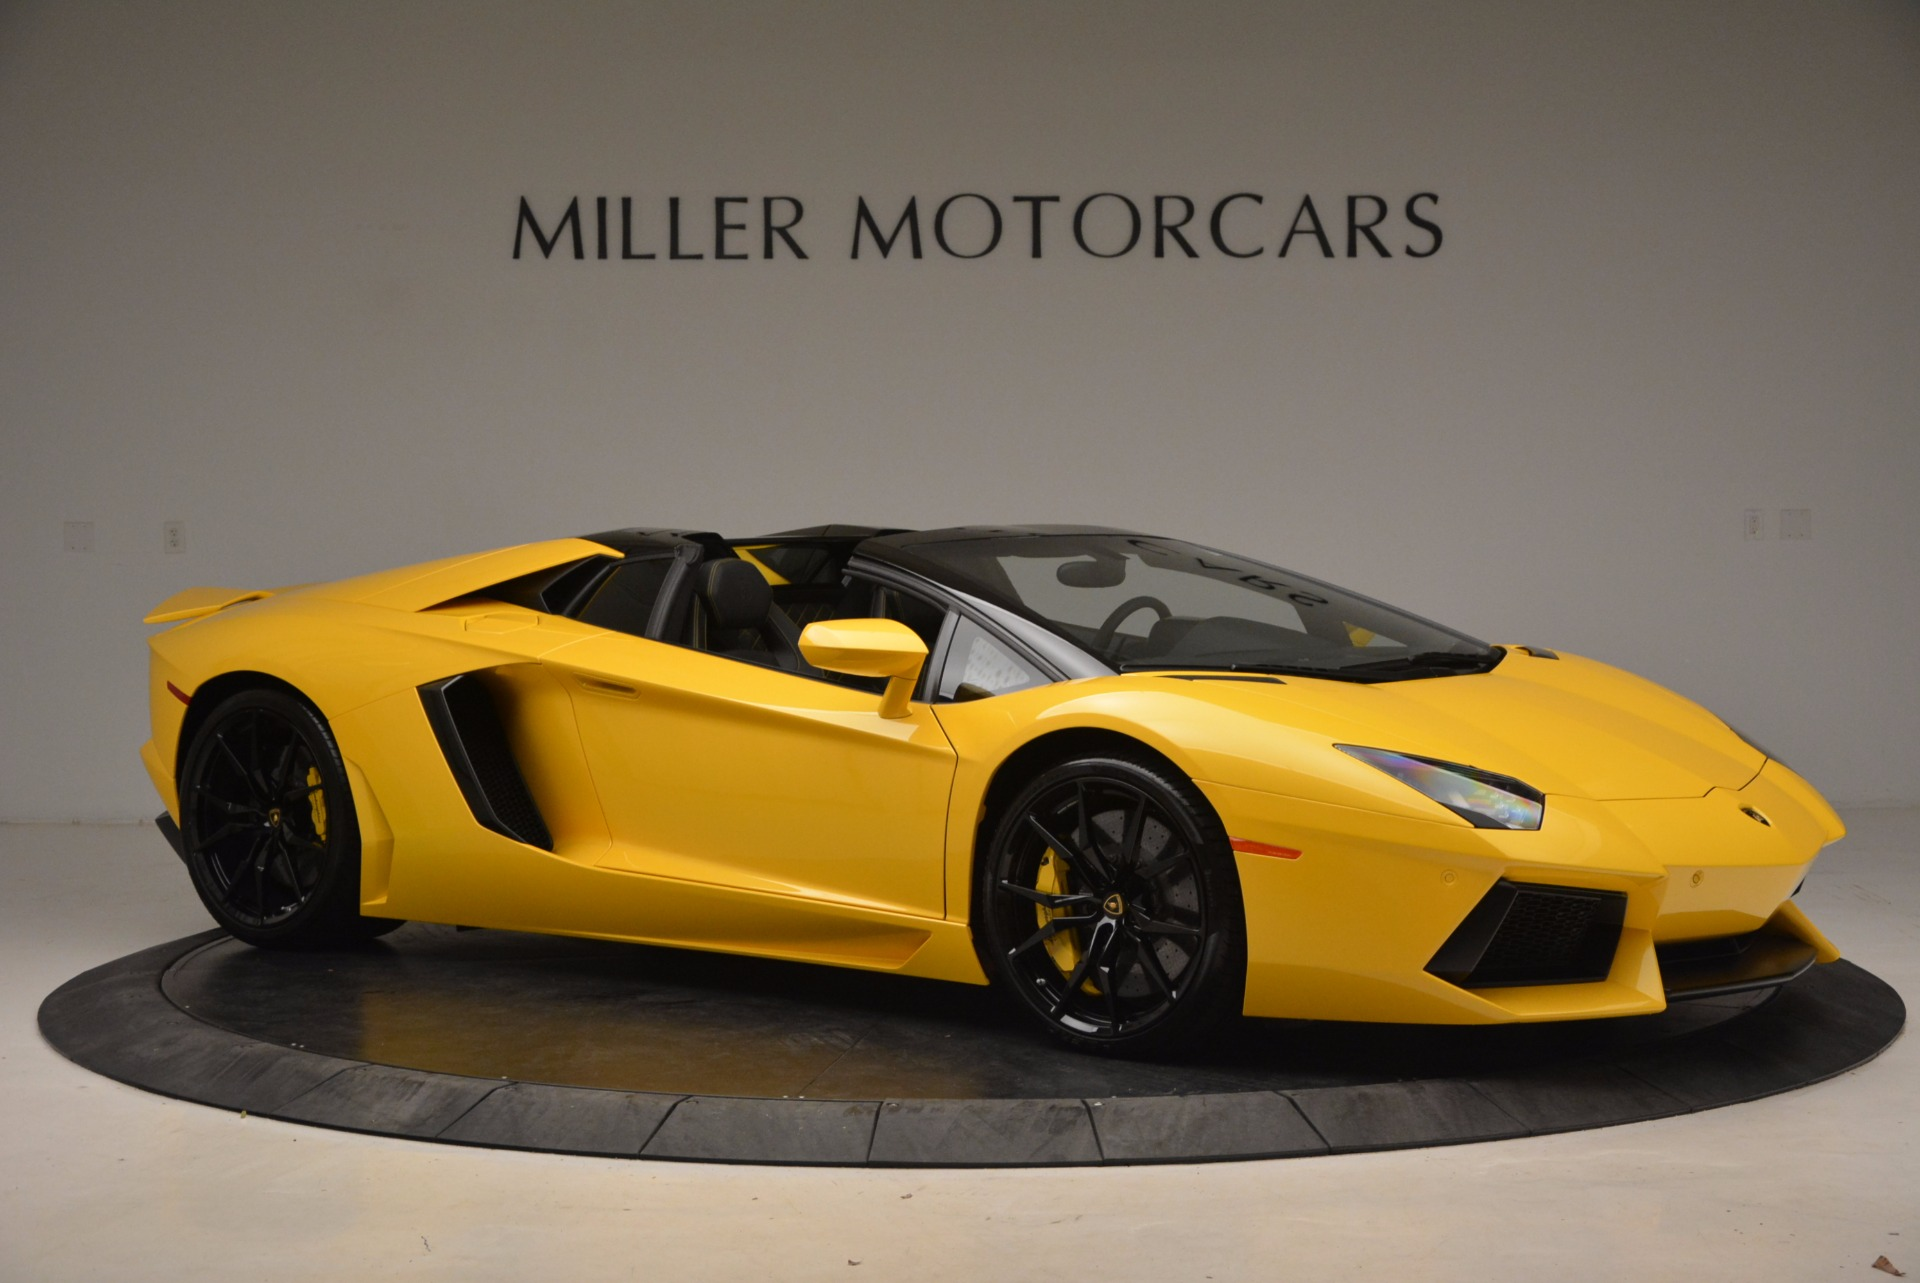 Used 2015 Lamborghini Aventador LP 700-4 Roadster For Sale In Westport, CT 1774_p11